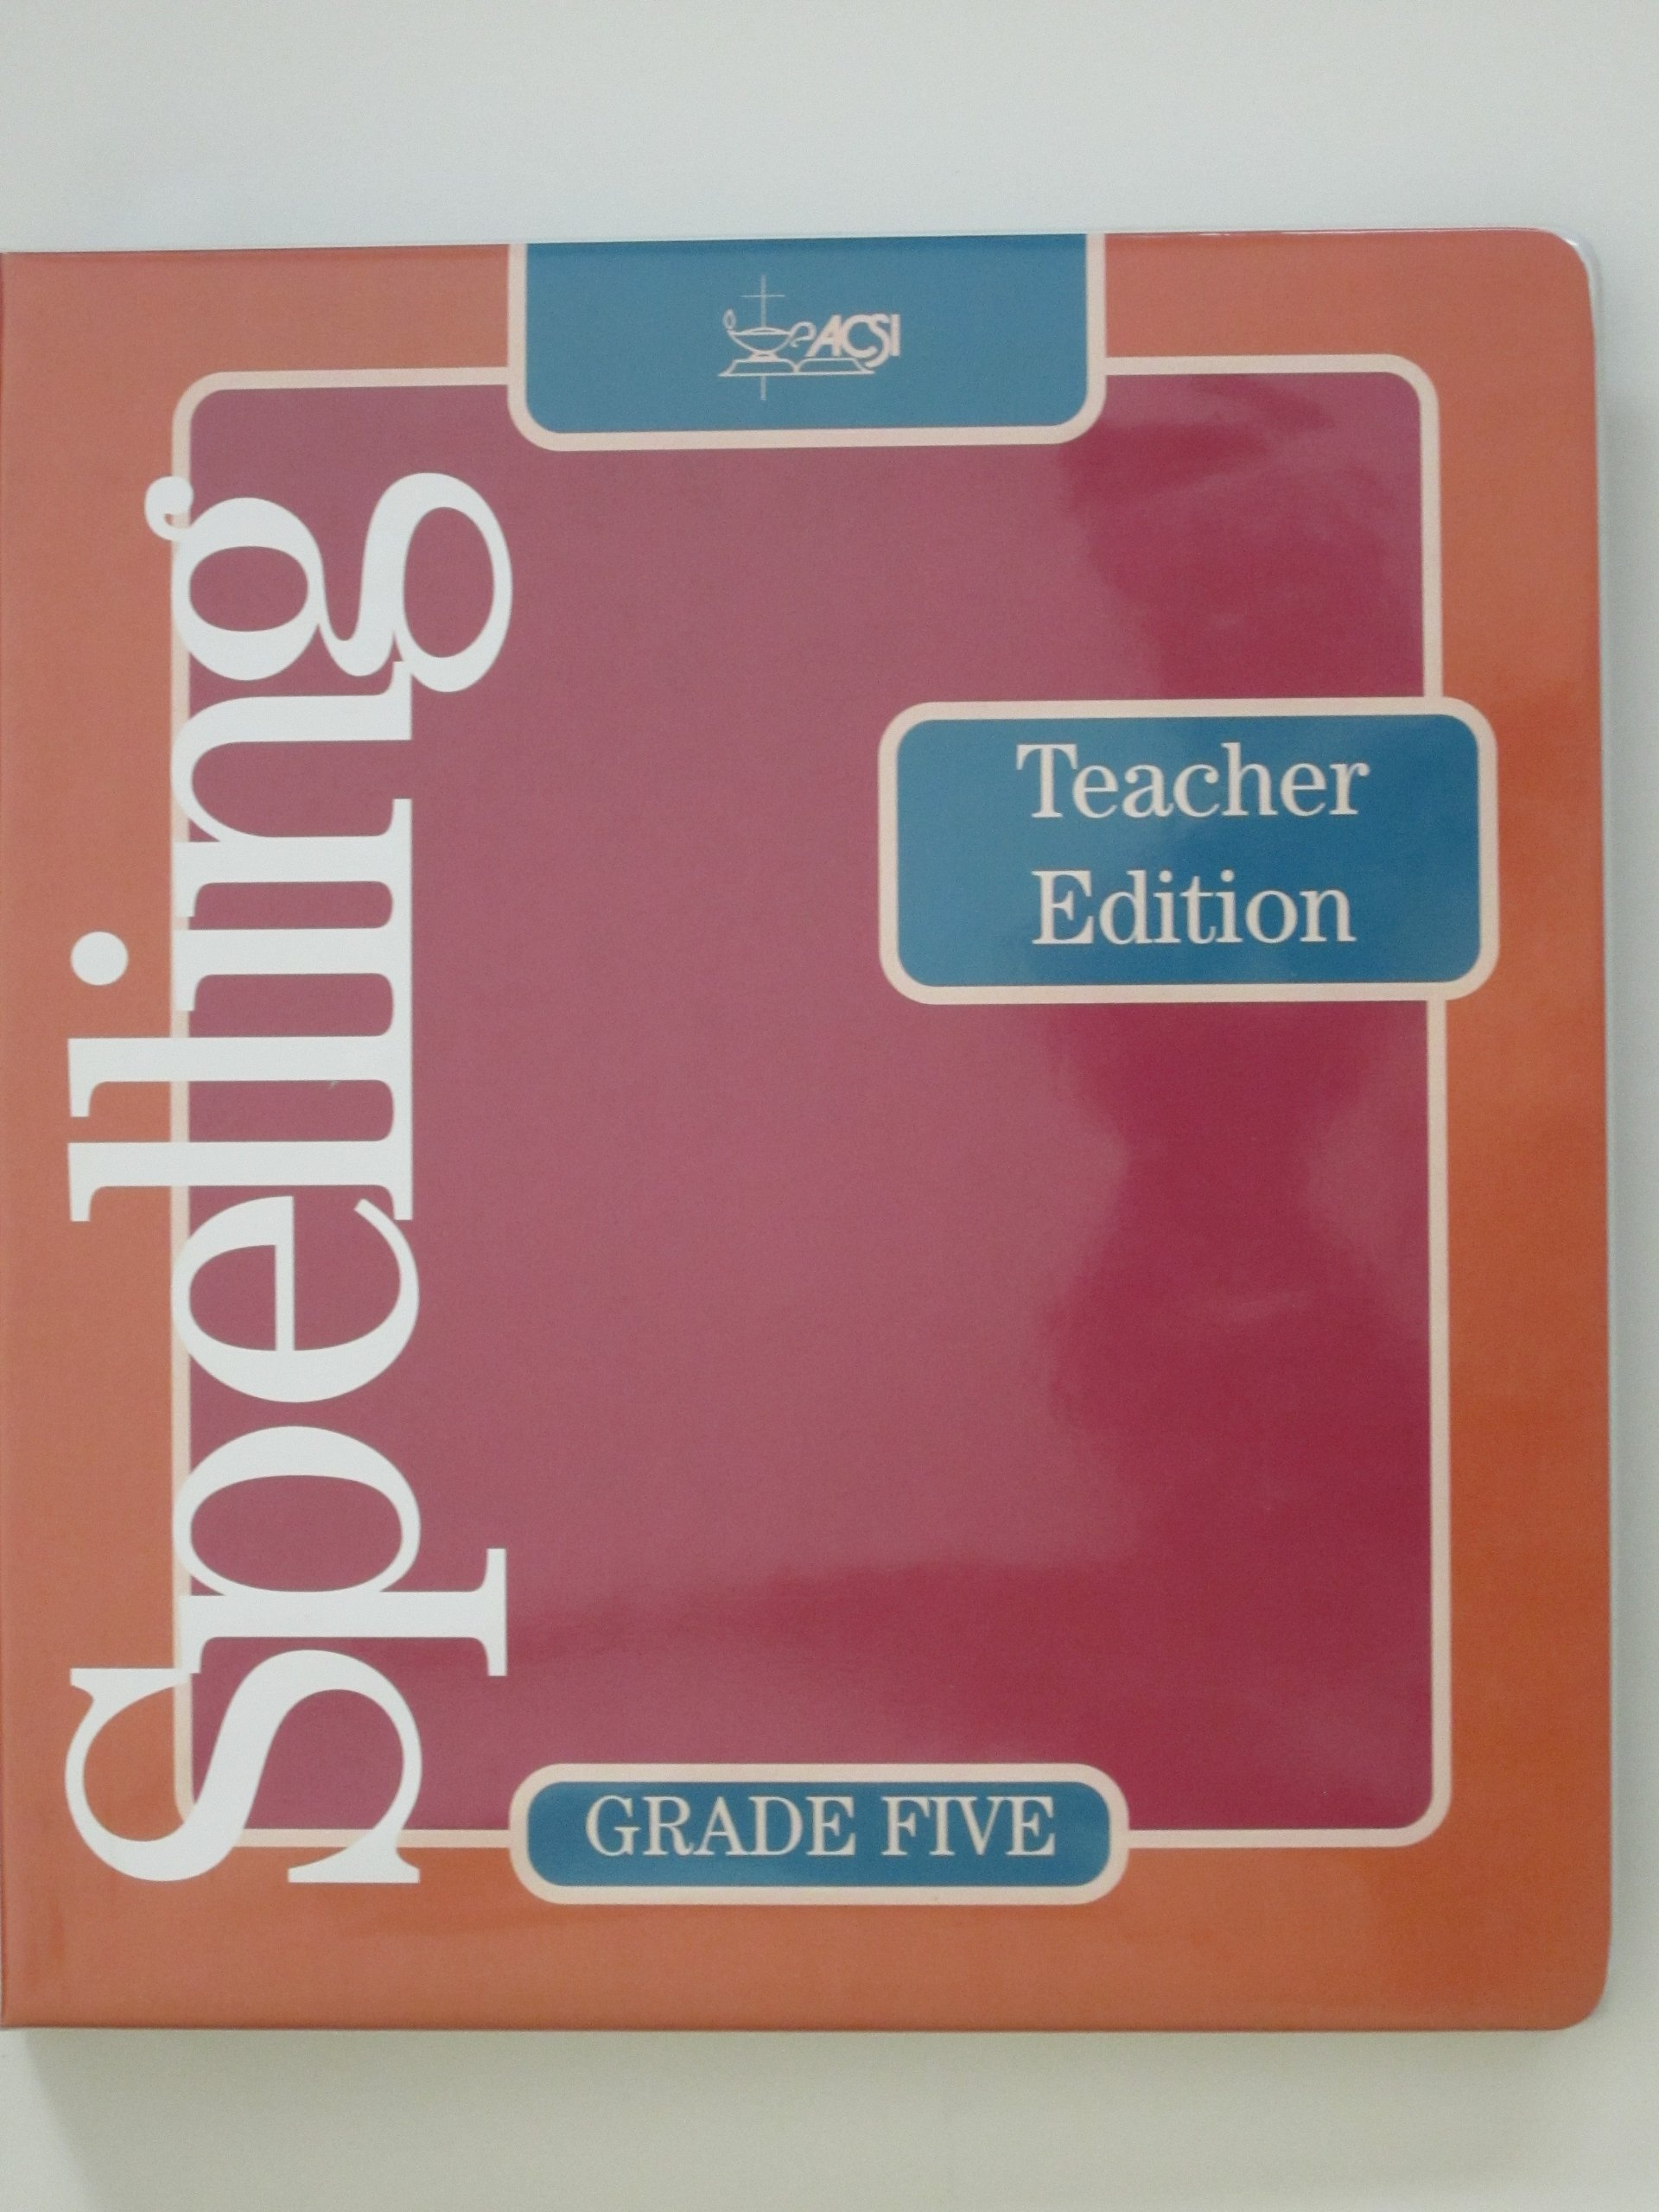 Amazon.com: Spelling, Grade 5, Teacher Edition: Association ...